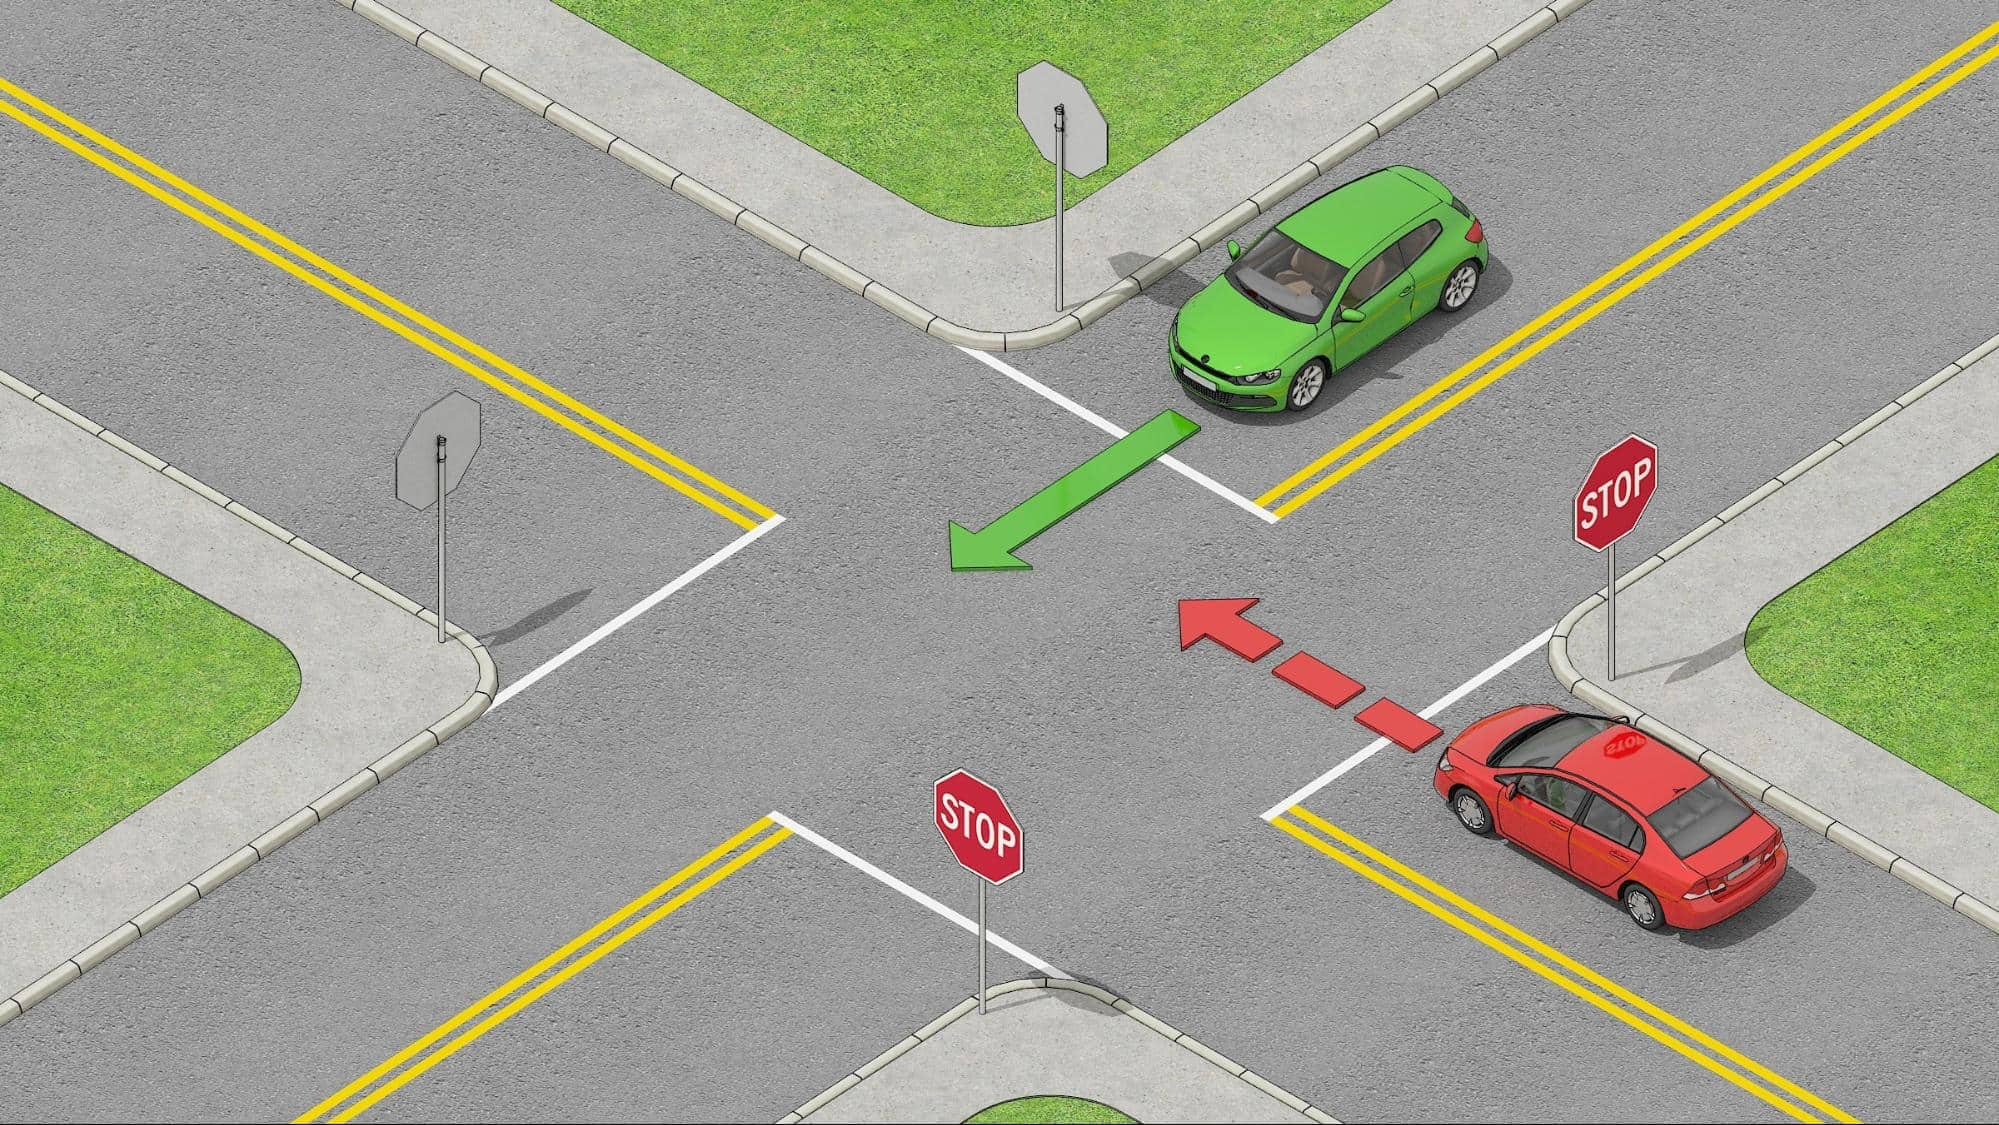 A red car that has to yield to a green car at an intersection